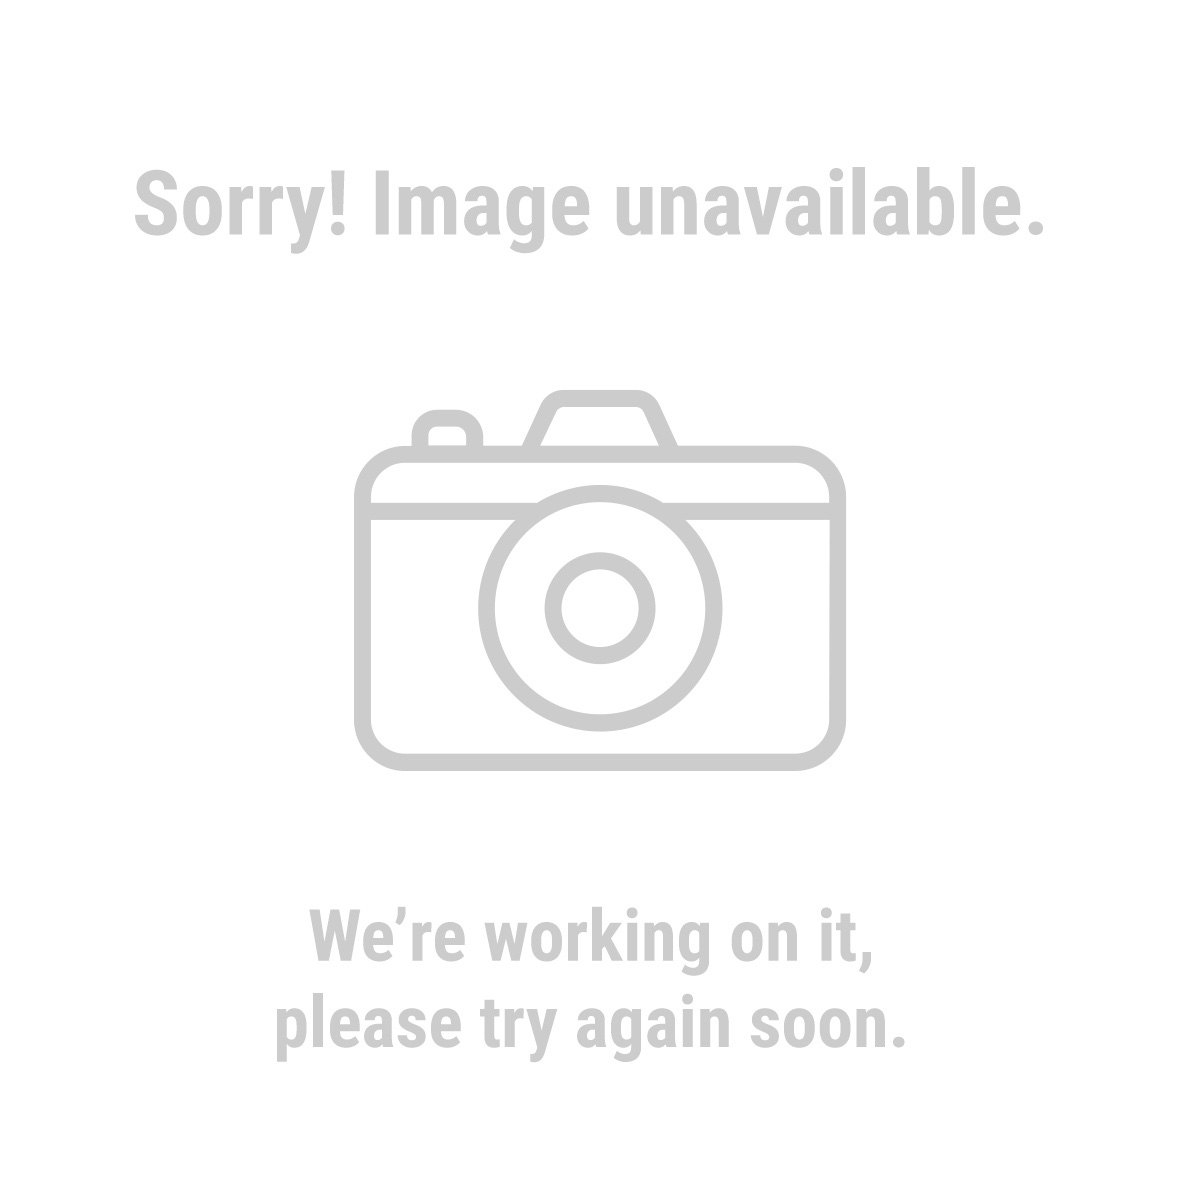 "Storehouse 98727 100 Piece 8"" Fluorescent Cable Tie Assortment"